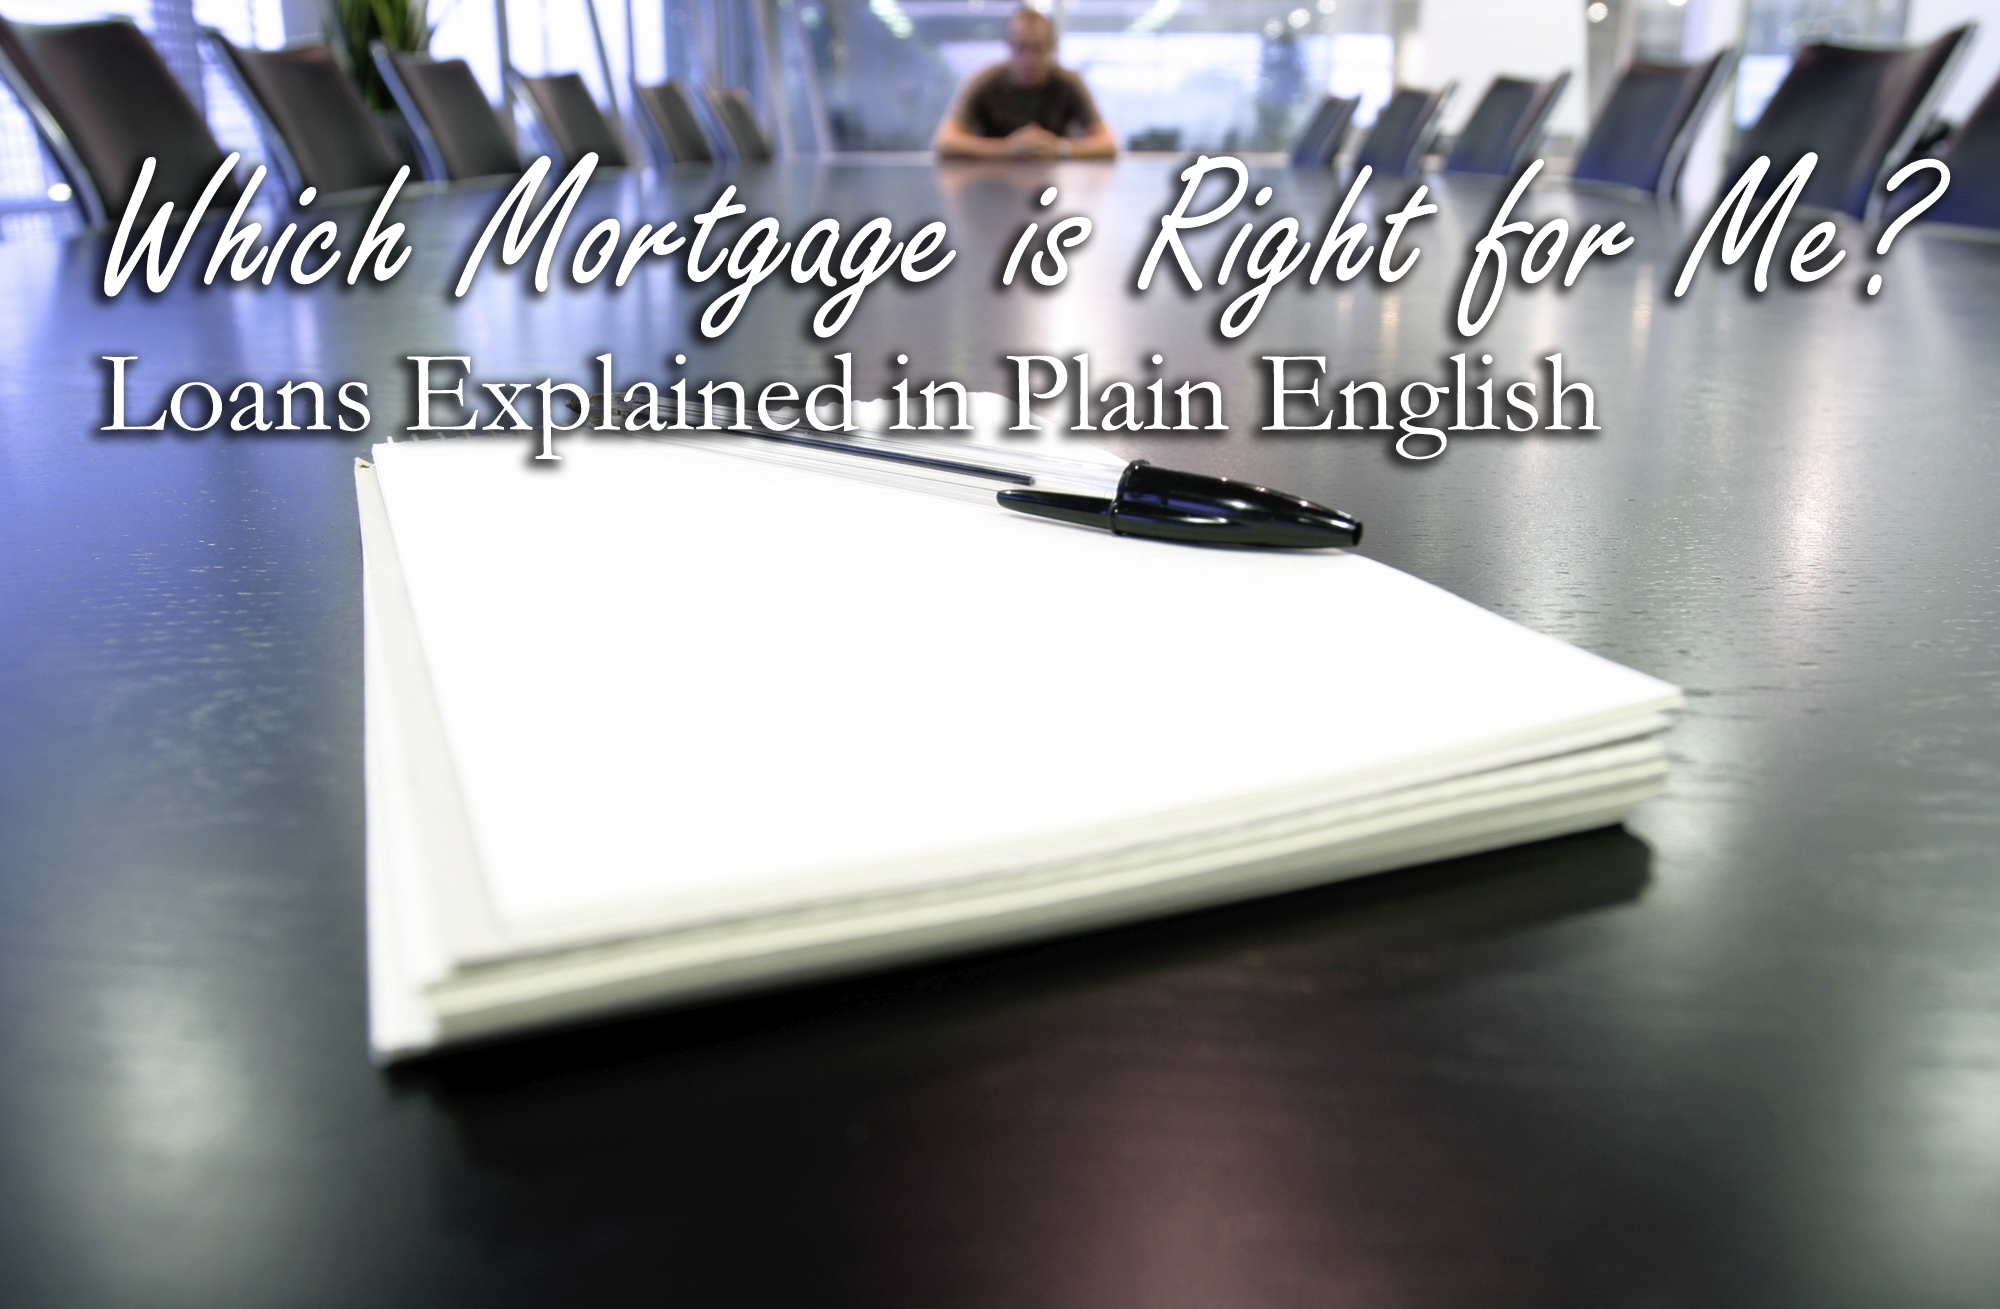 Which Mortgage is Right for Me?